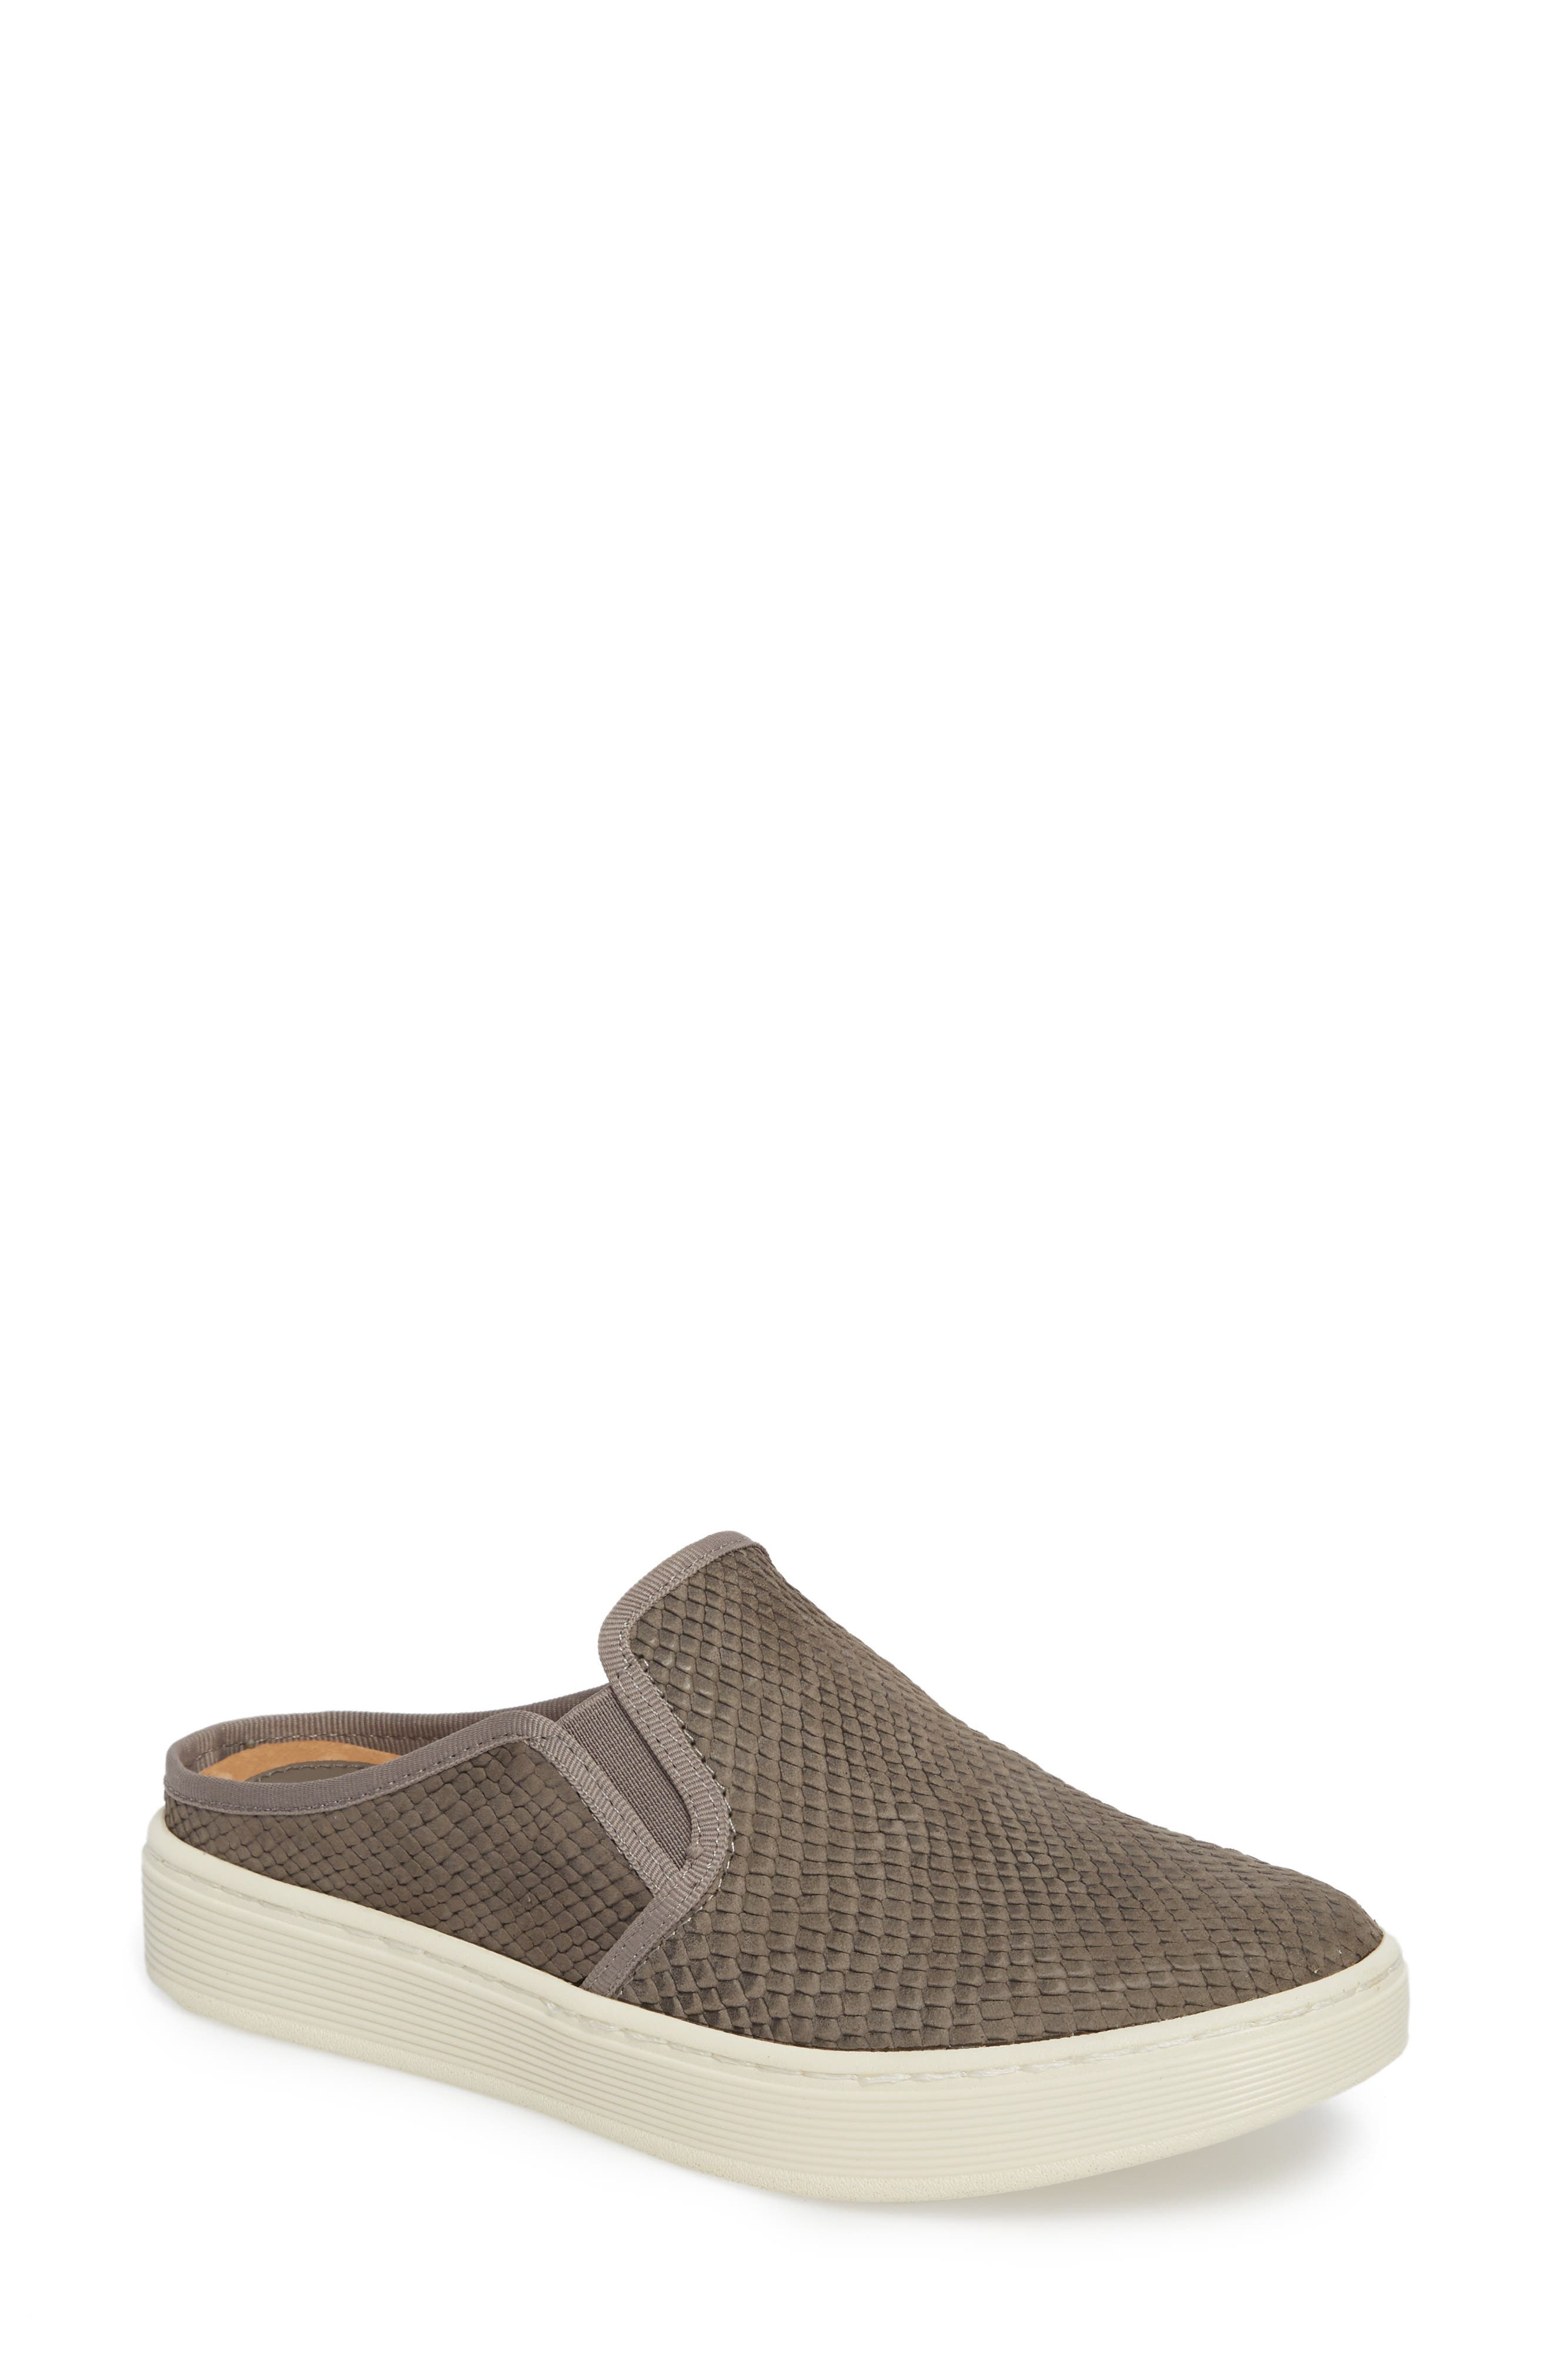 Somers Slip-On Sneaker,                             Main thumbnail 1, color,                             Snare Grey Print Leather